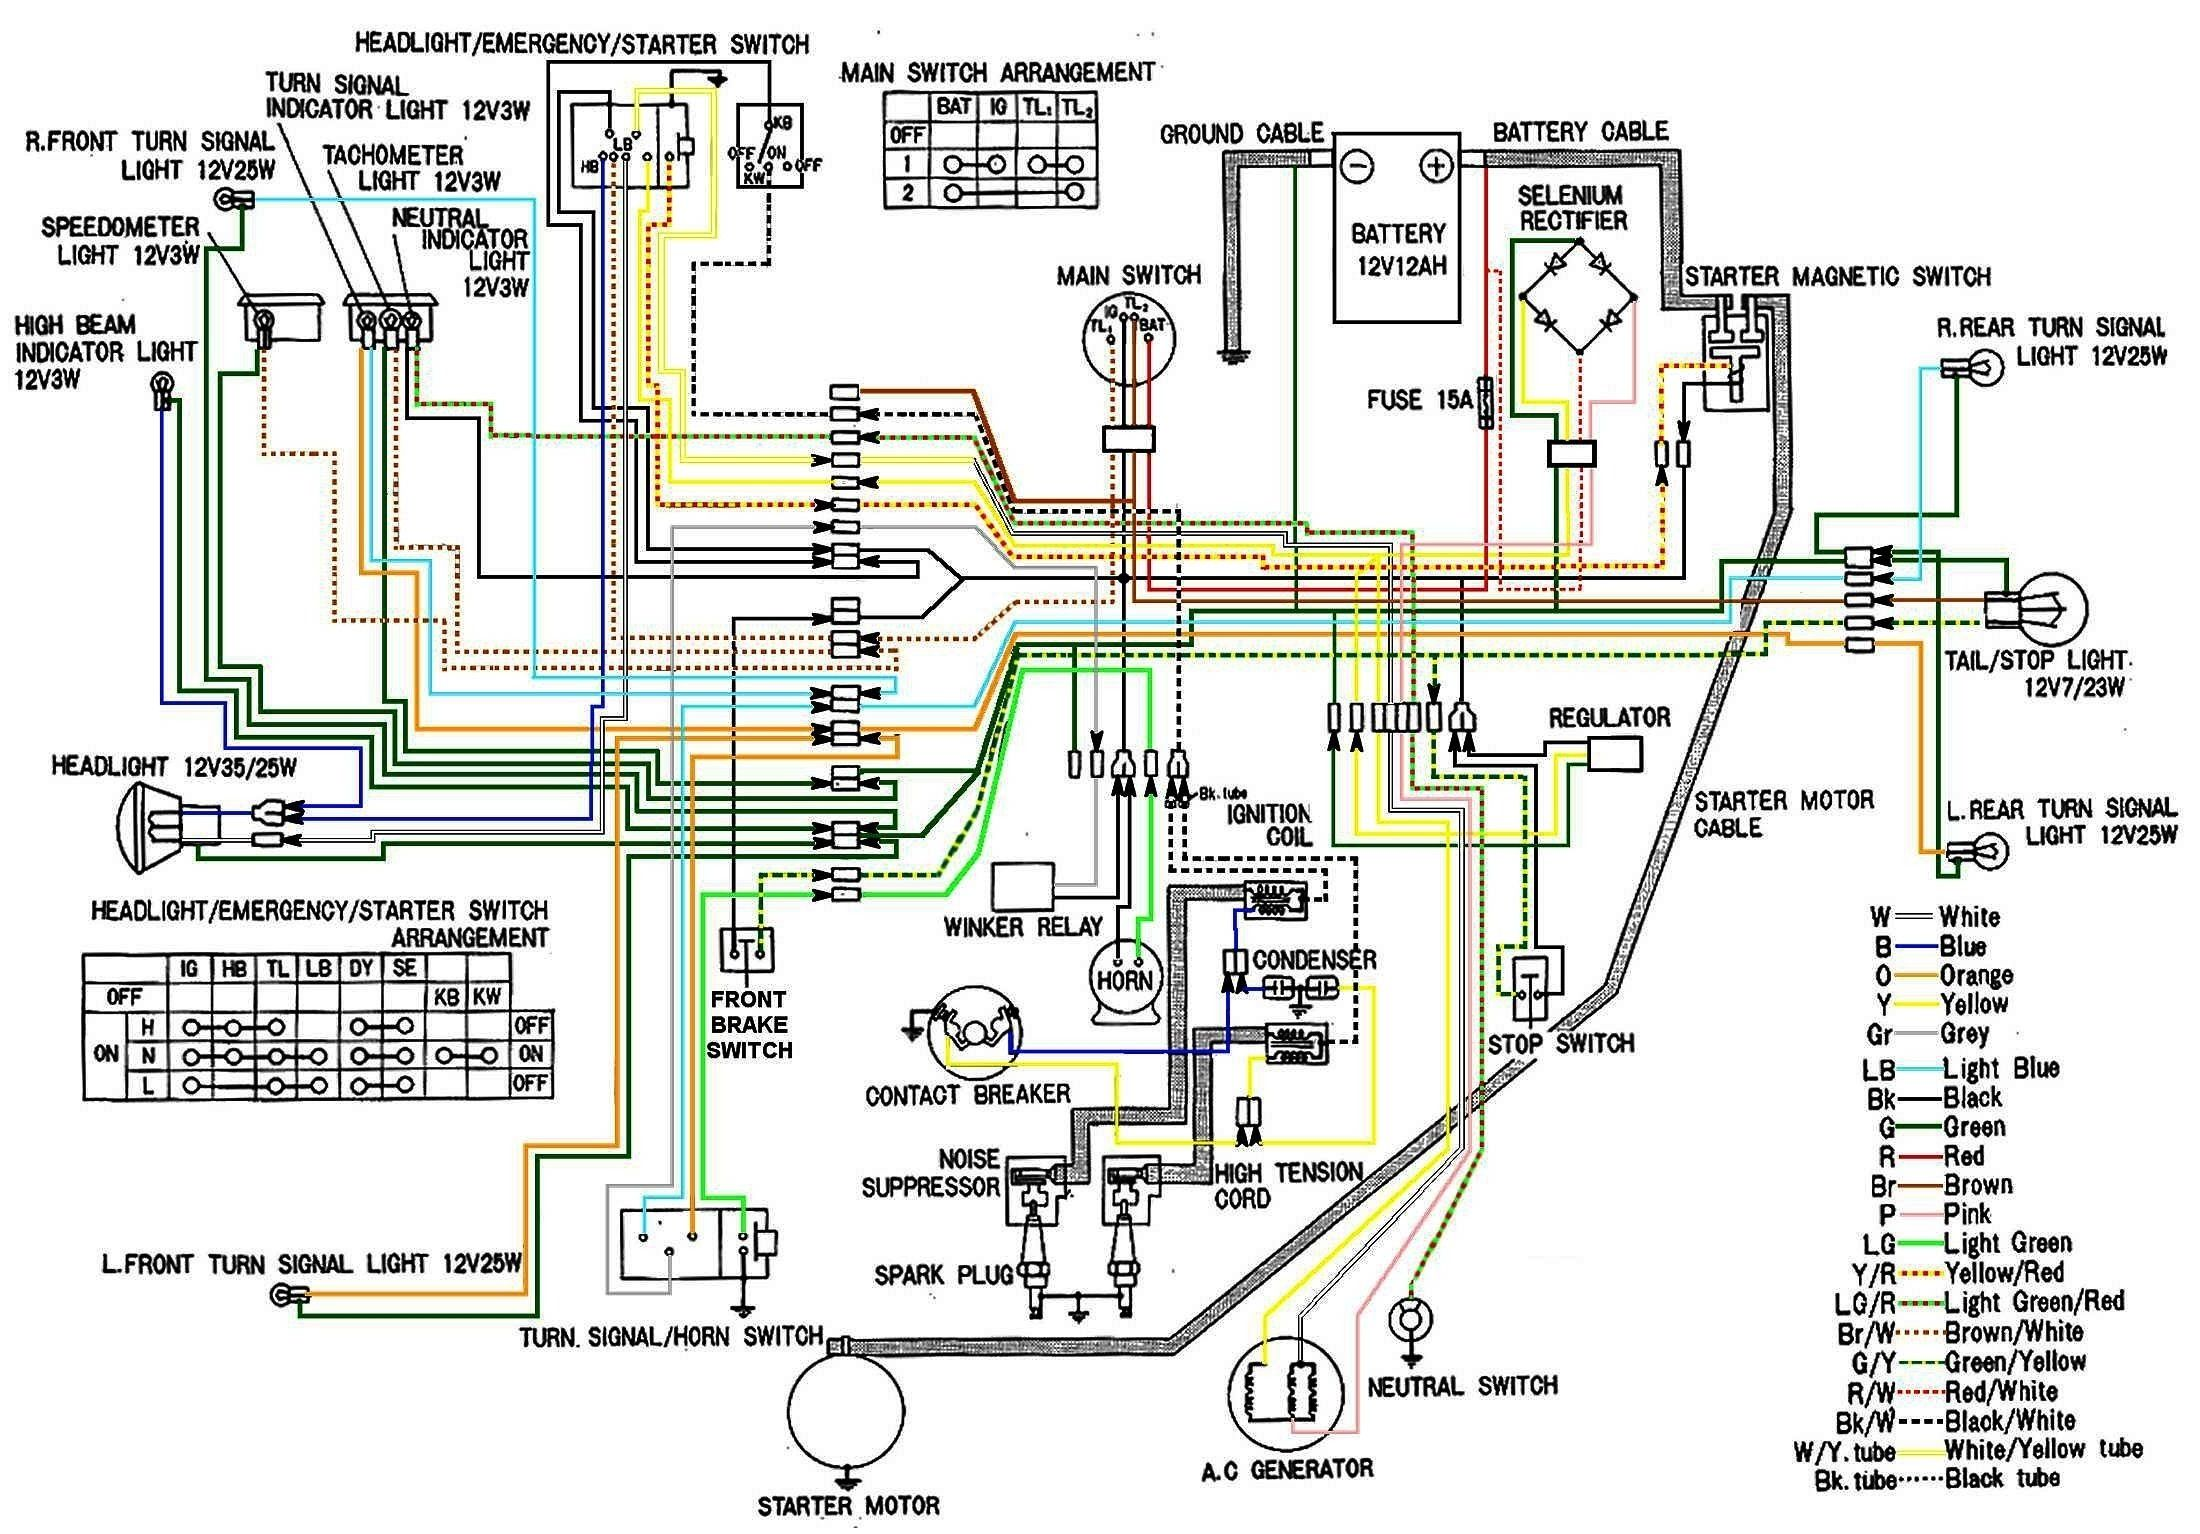 [SCHEMATICS_44OR]  Plug Besides Cb360 Wiring Diagram On Honda Cb Wiring Diagrams - Wire with  regard to Cb360 Wiring Diagram | Electrical wiring diagram, Diagram, Wire | Honda Cb160 Wiring |  | Pinterest